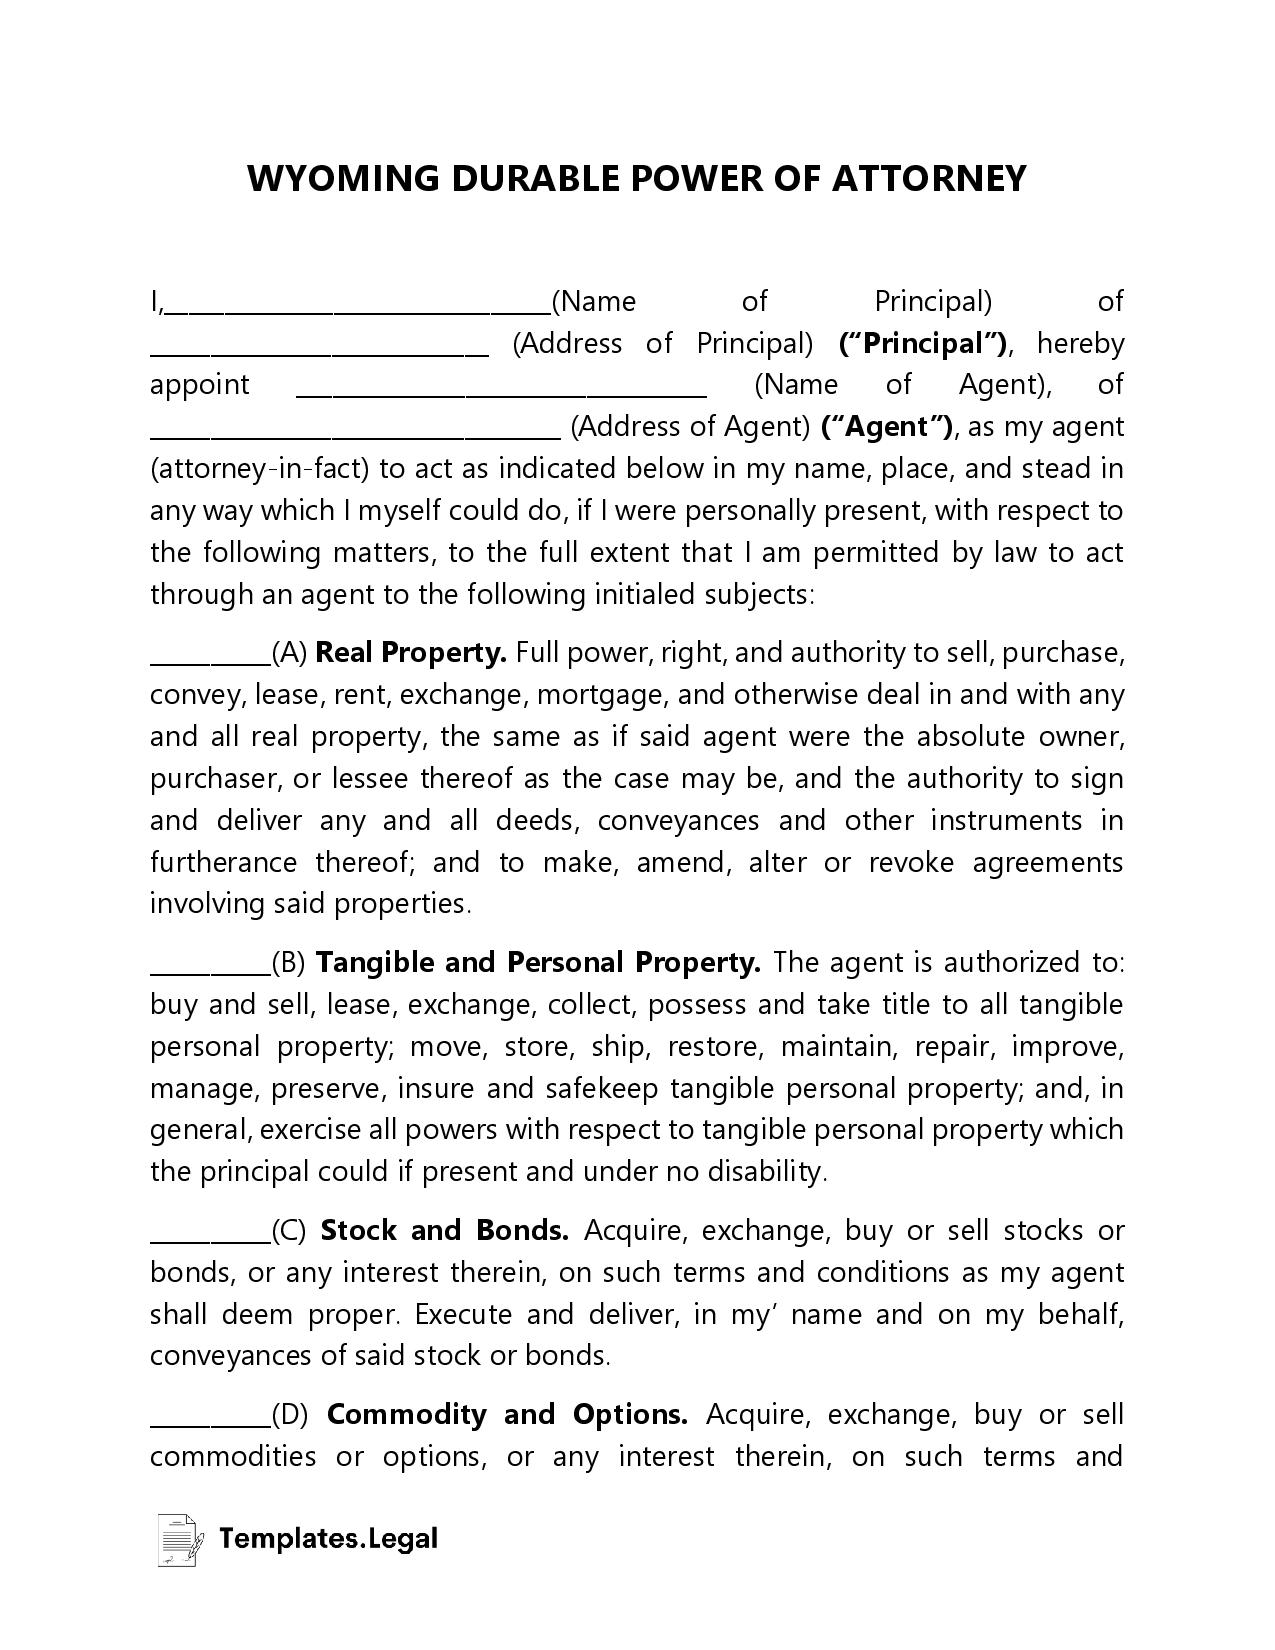 Wyoming Durable Power of Attorney - Templates.Legal